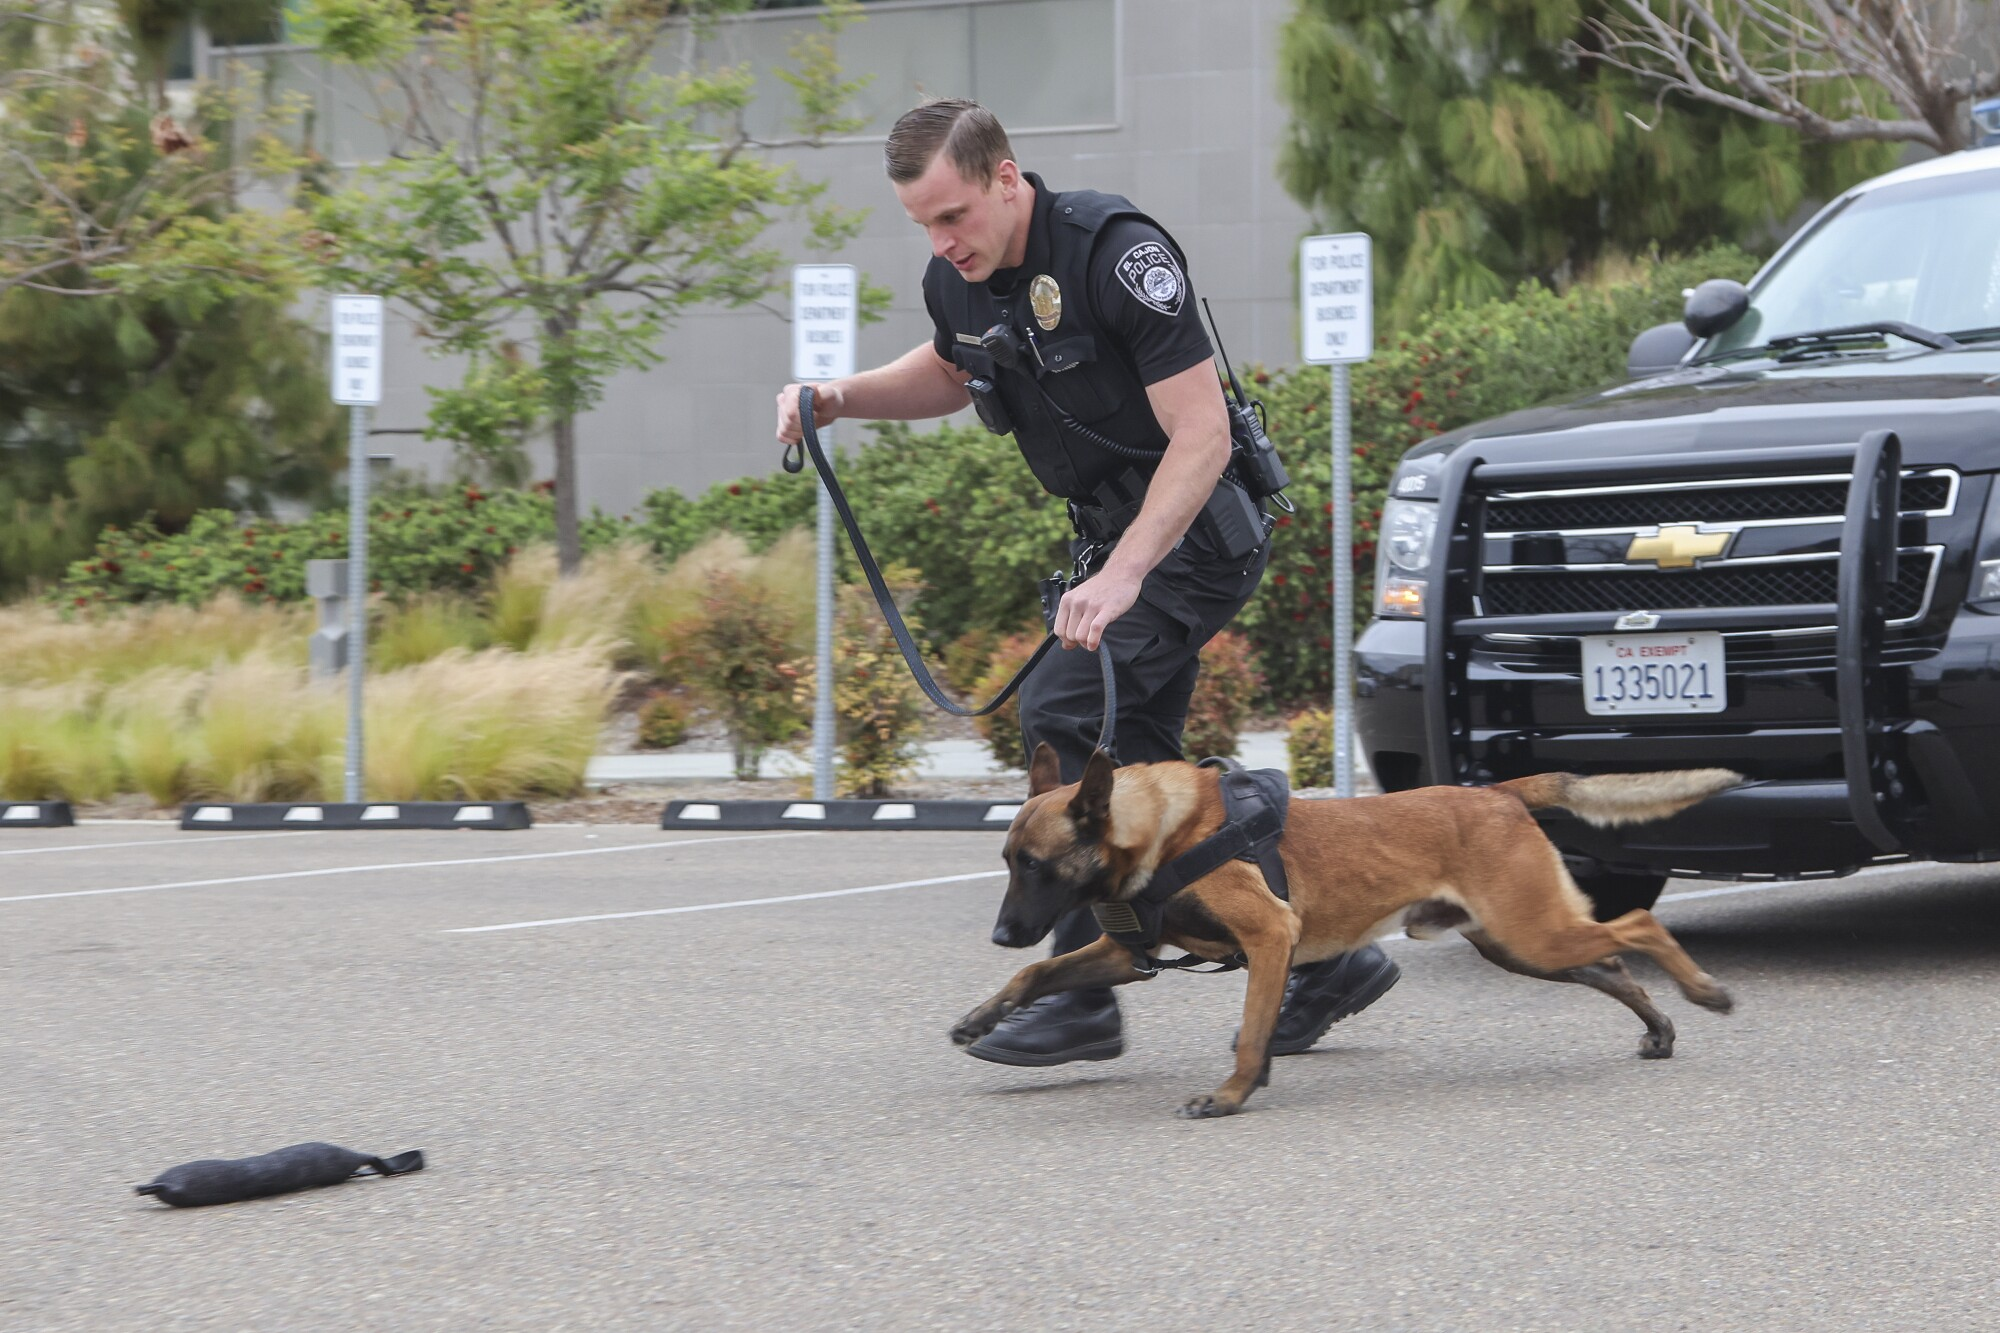 El Cajon police officer Stephen Hannibal works his new dog Ace at the El Cajon Police Department.